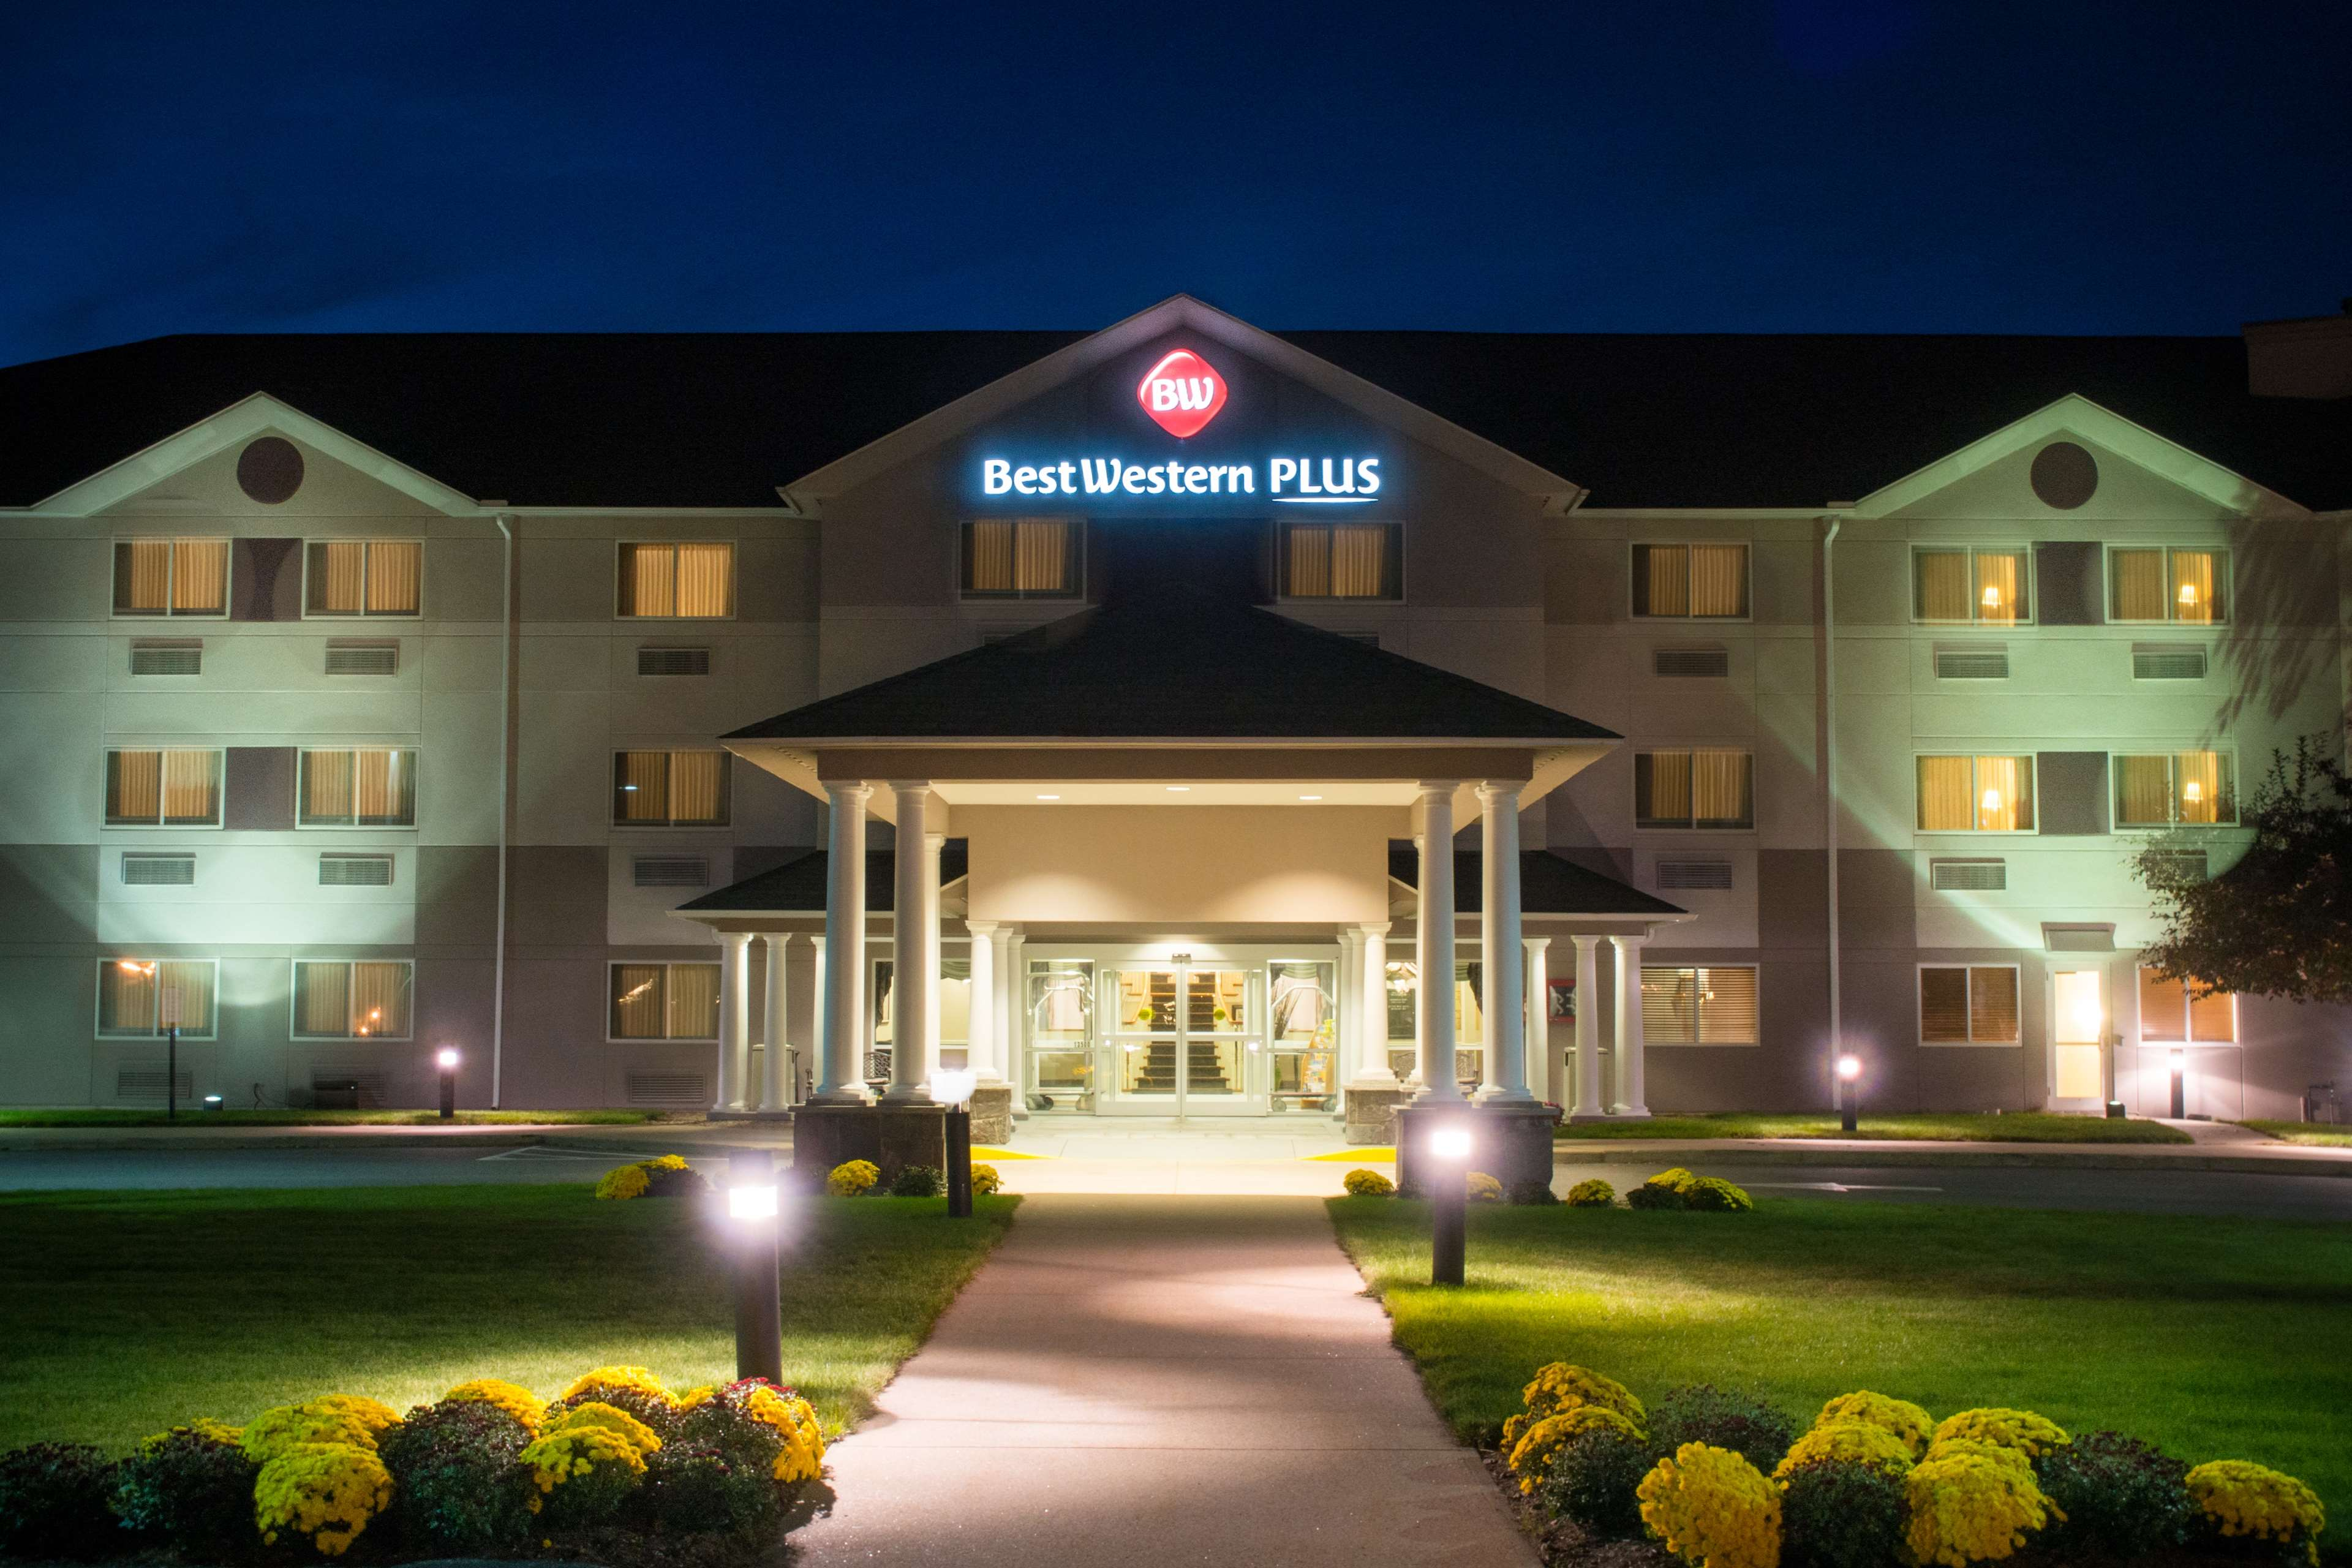 Best Western Plus Executive Court Inn & Conference Center image 1